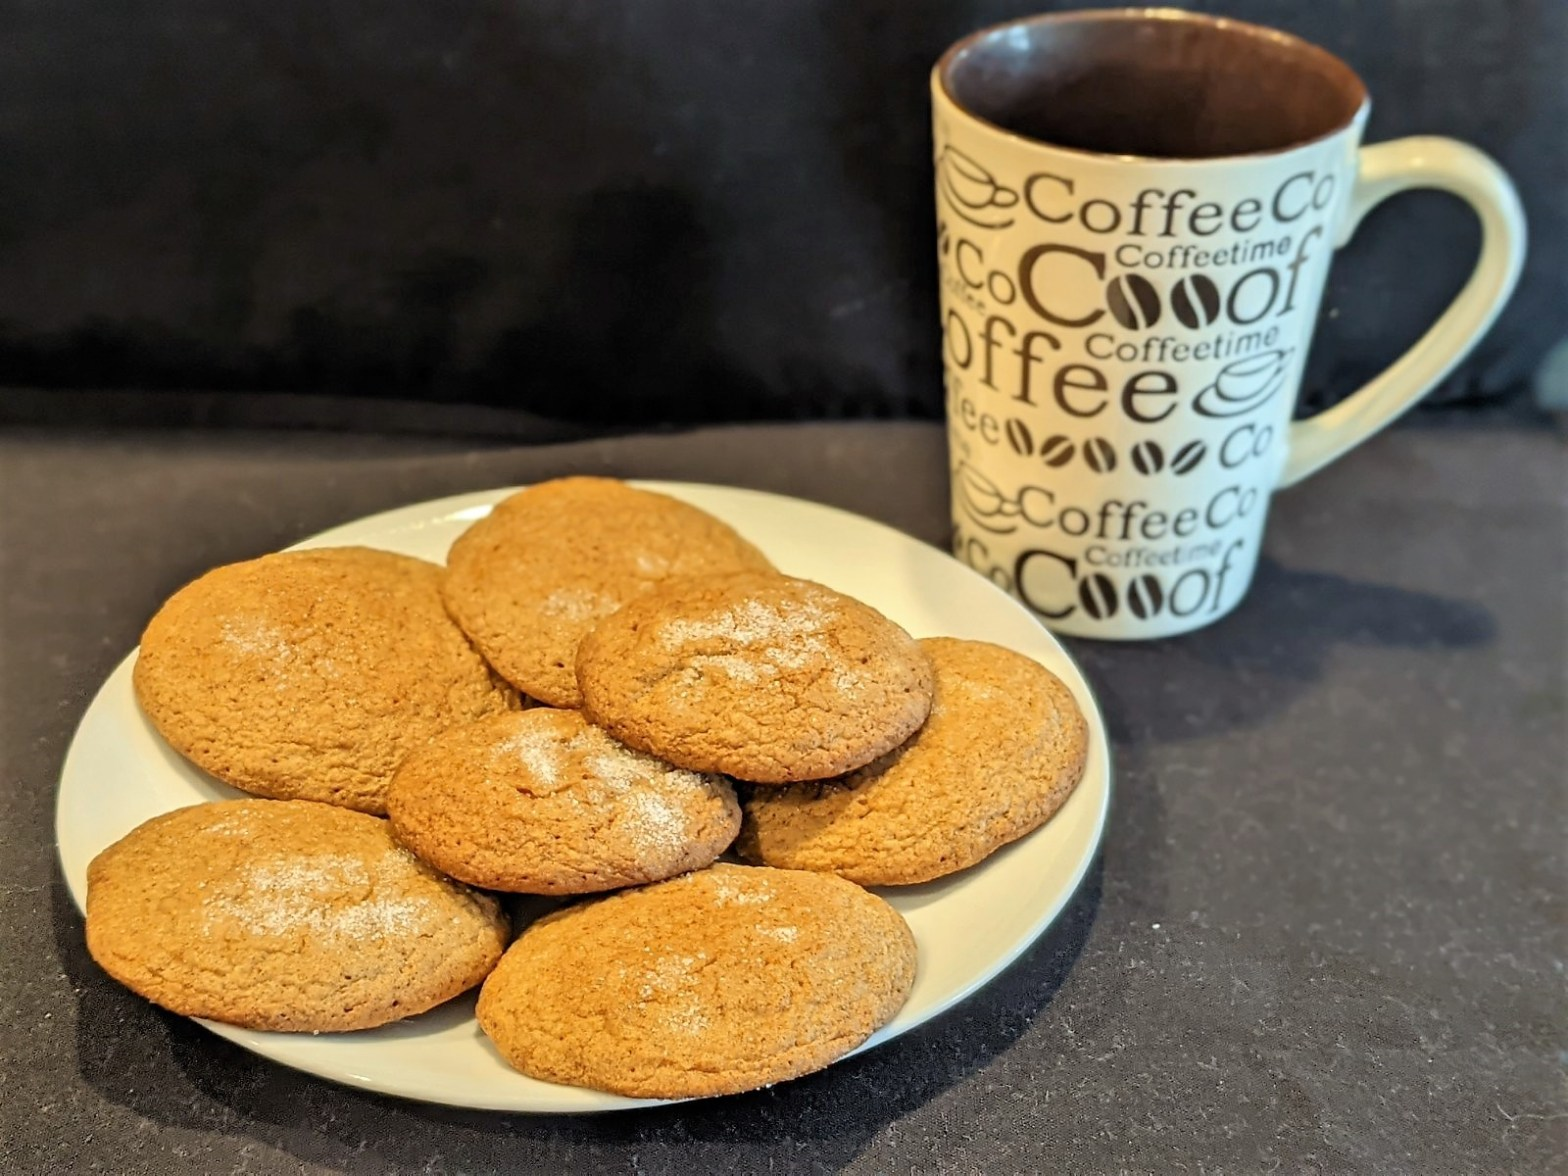 Gingerbread Cookies go great with a cup of coffee